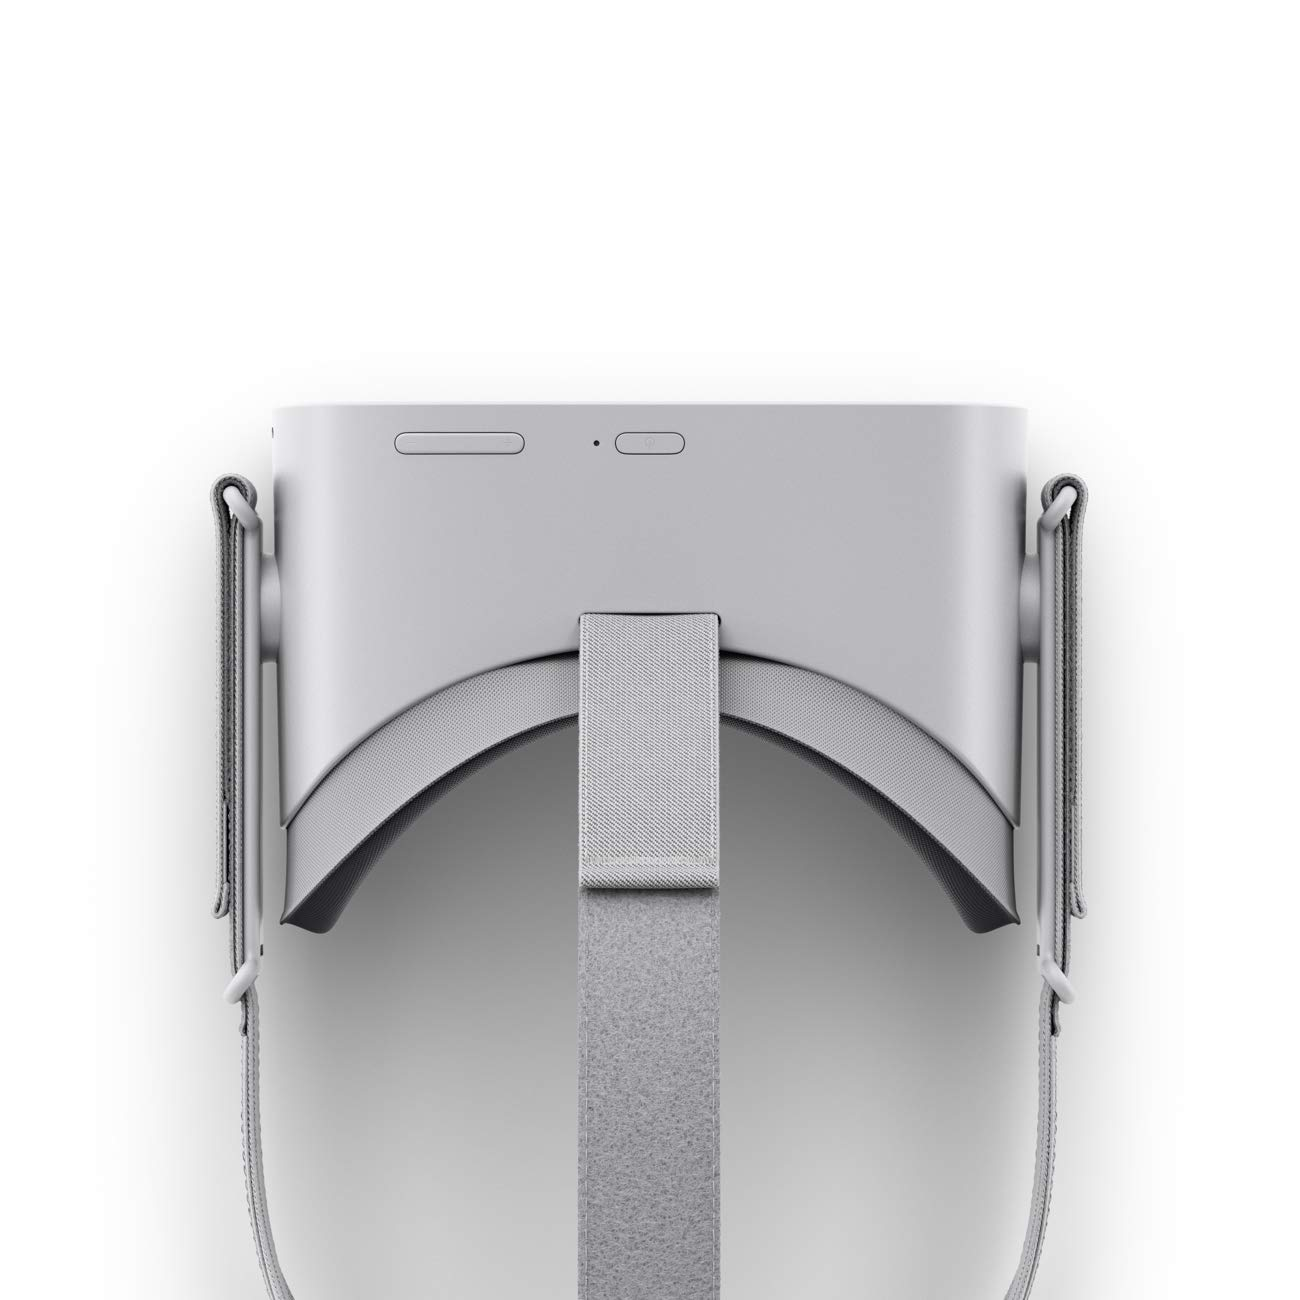 Oculus Go Standalone Virtual Reality Headset  - 32GB by Oculus (Image #6)